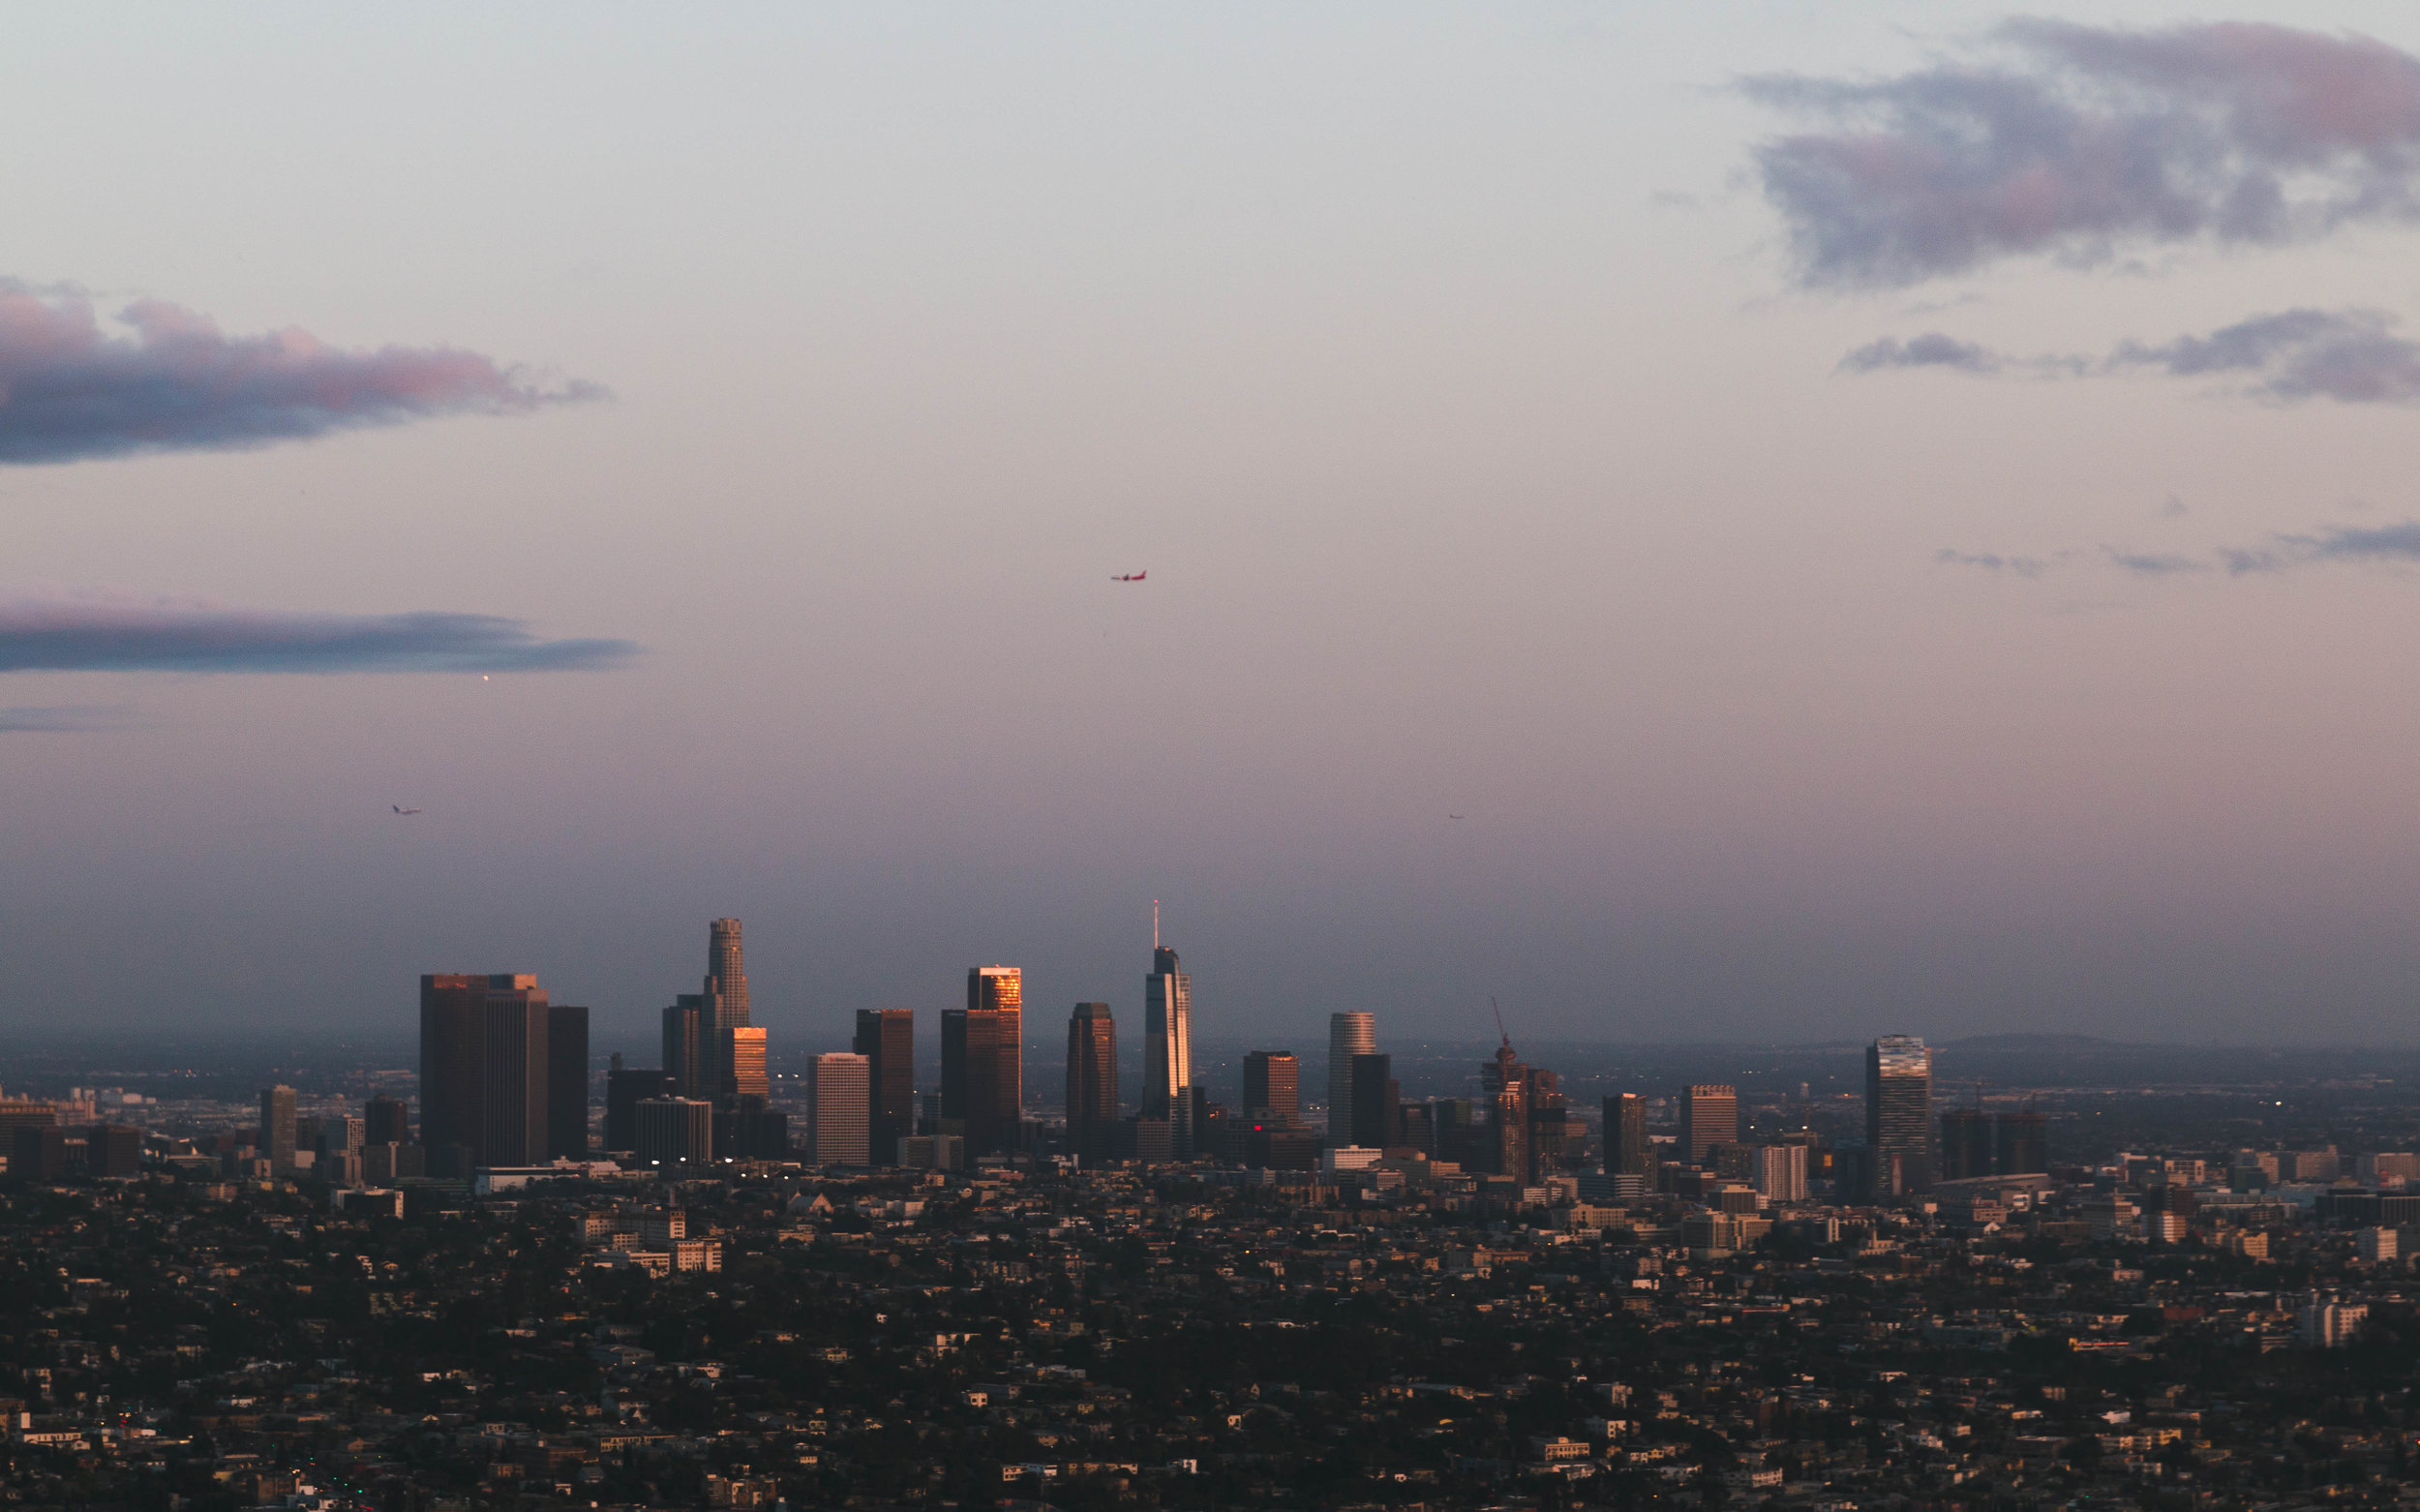 Southwest Airlines B737 Passing Over Los Angeles